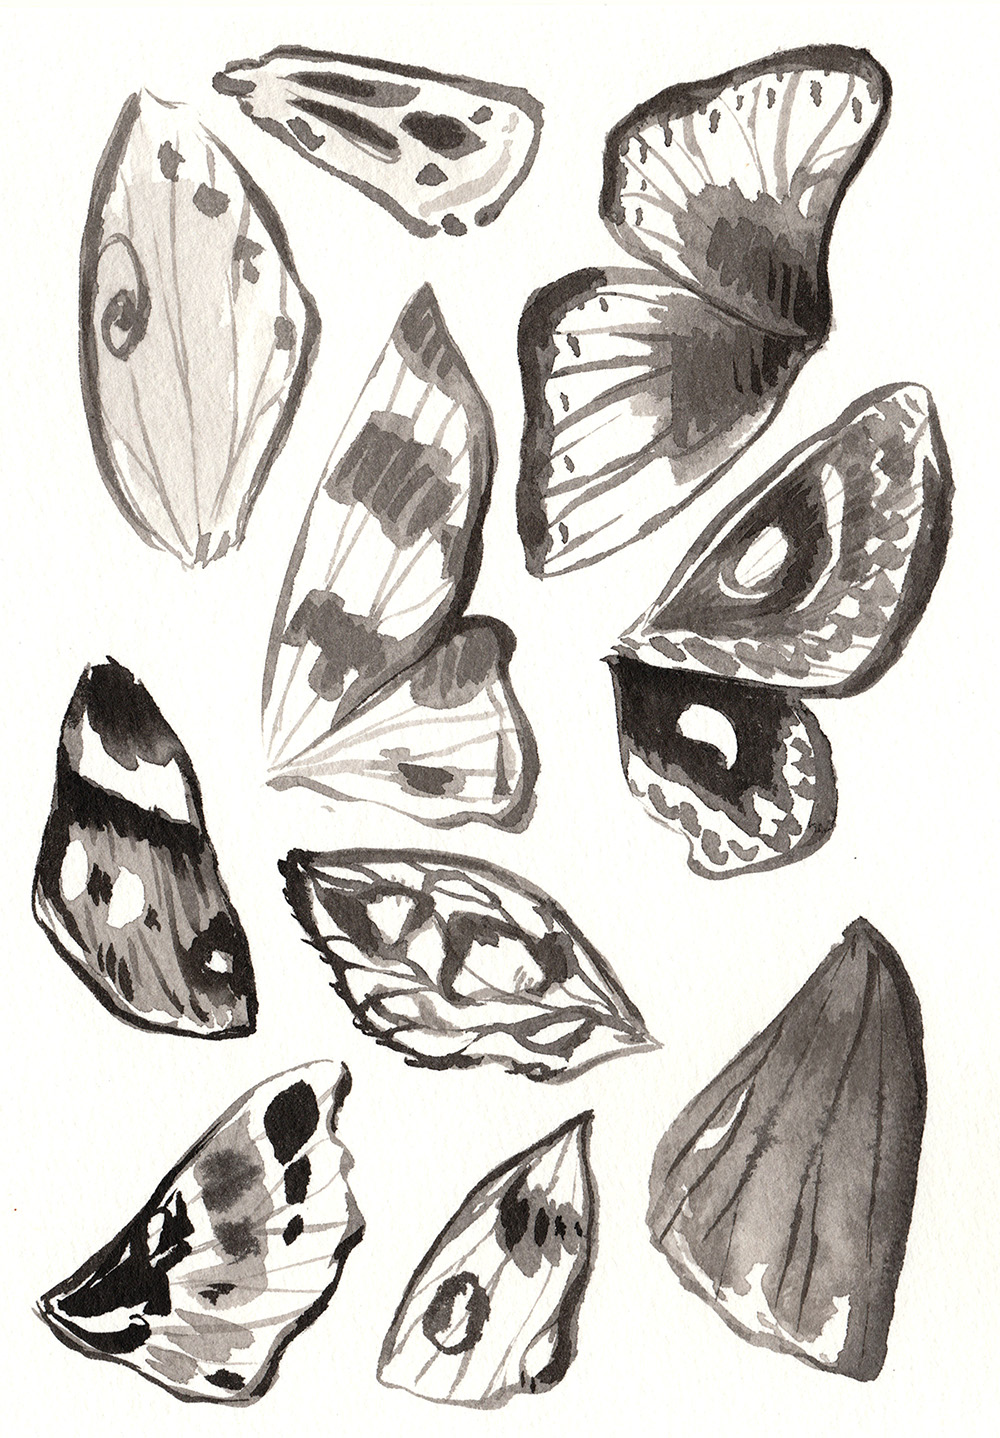 Ink illustration of various moth wings